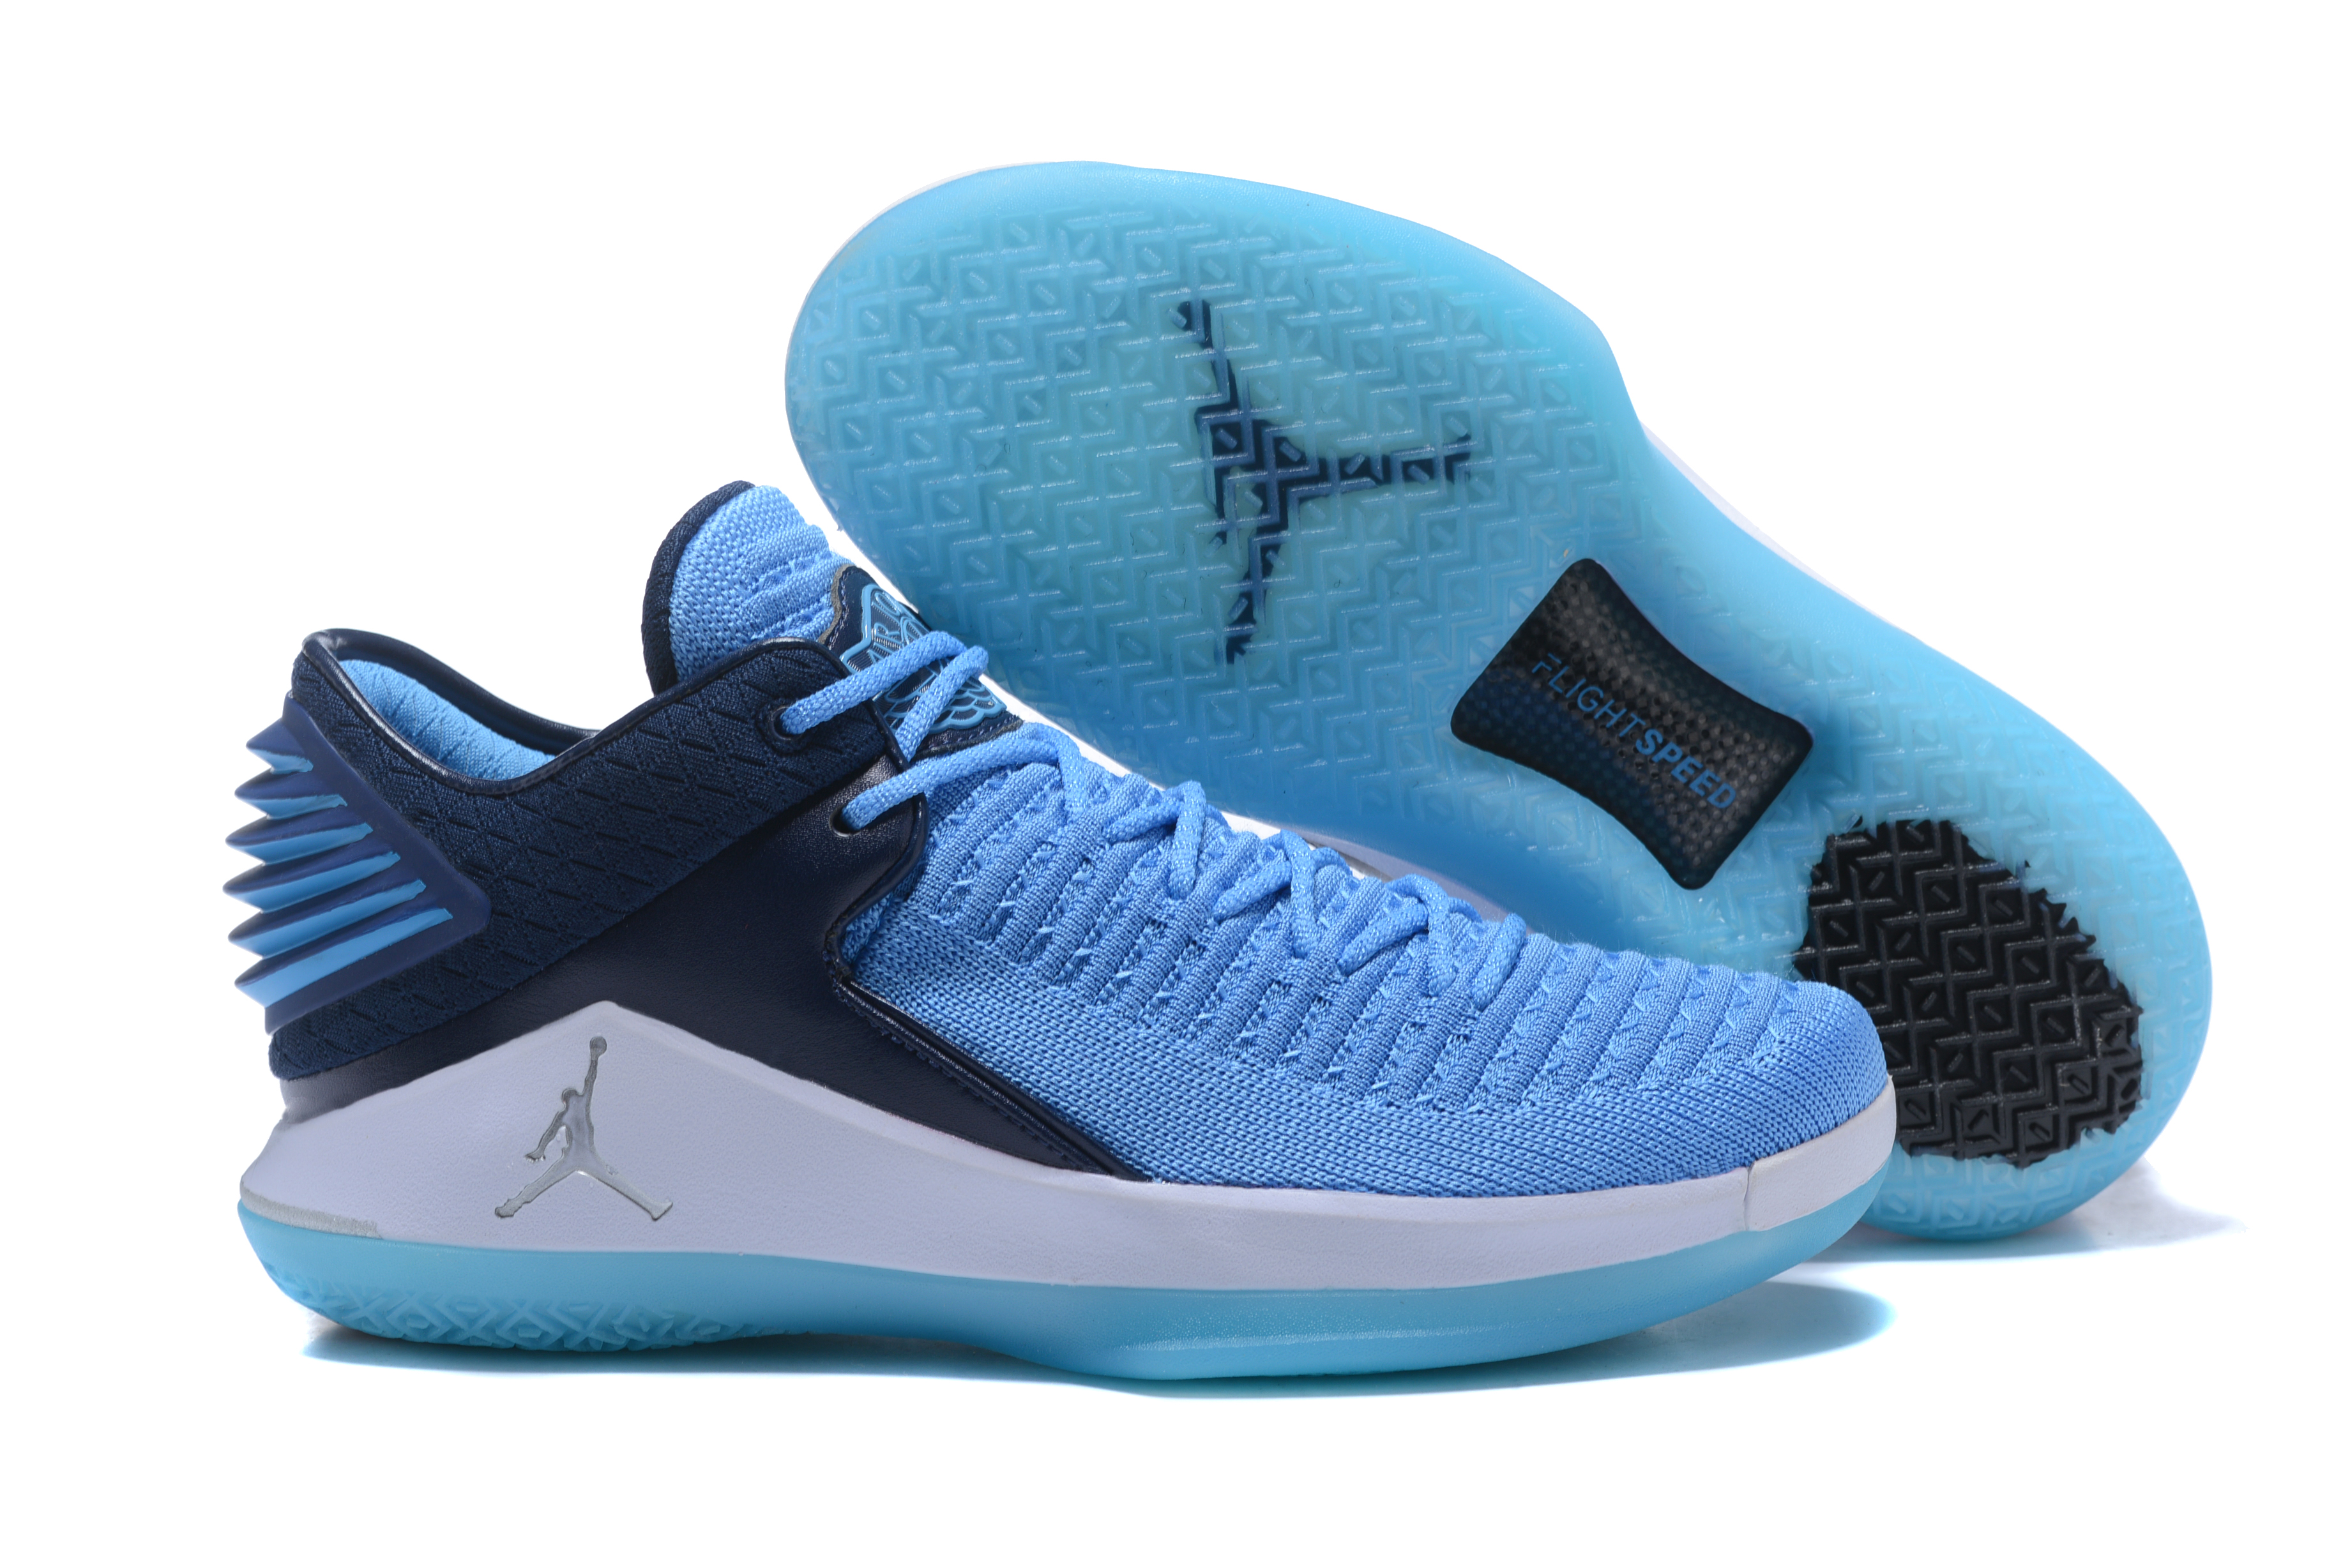 New Air Jordan 32 Low Blue Black White